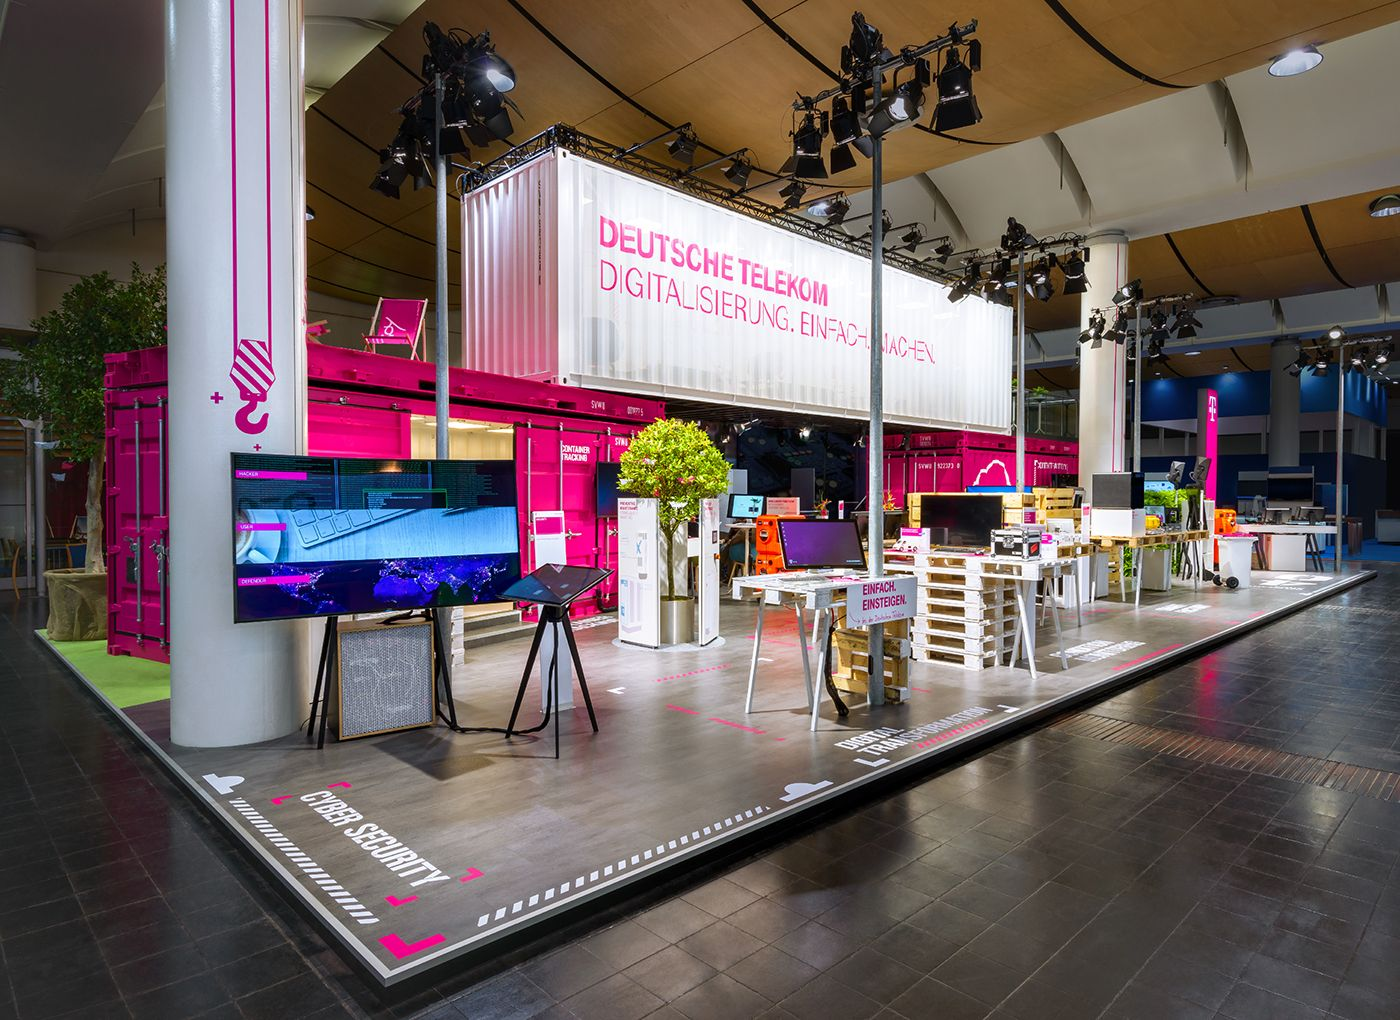 Exhibition Stand Lighting Guide : Deutsche telekom hannover messe on behance